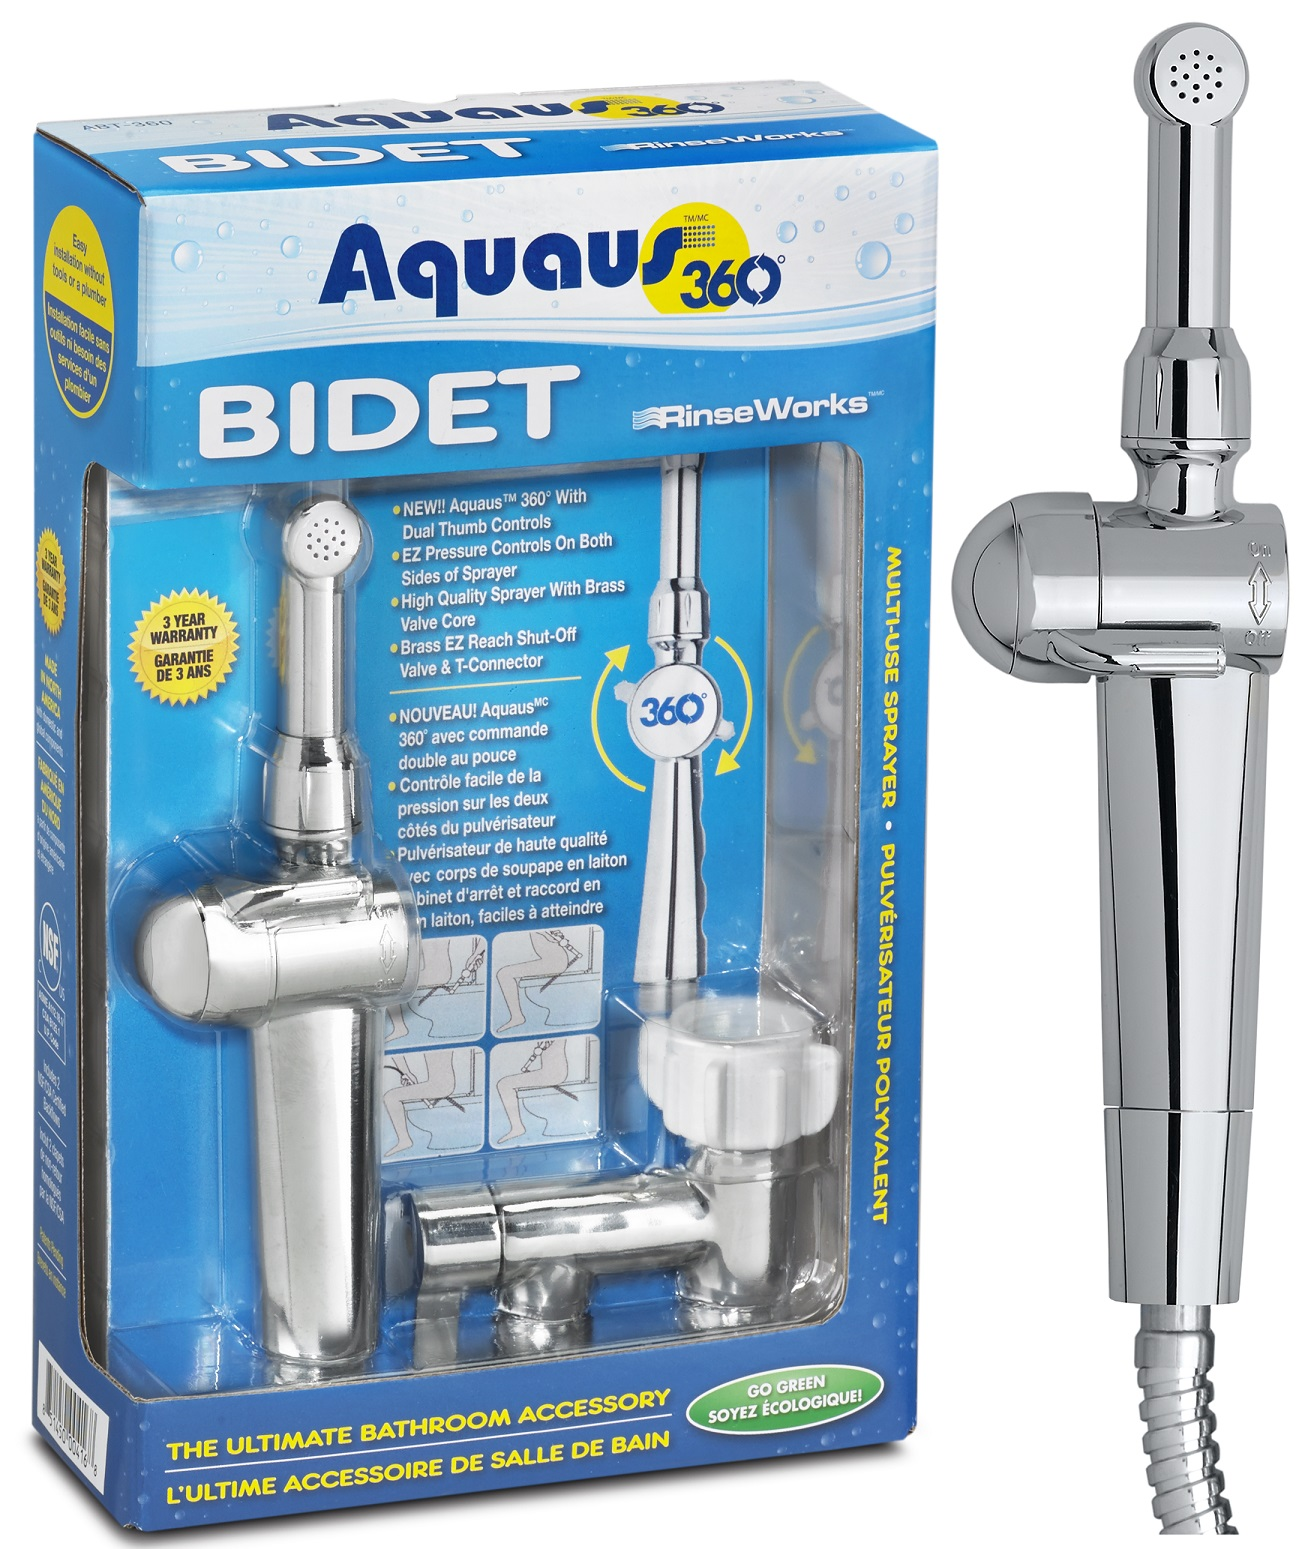 Aquaus Handheld Bidet for Toilet NSF Certified 3 Year Warranty Made in the USA